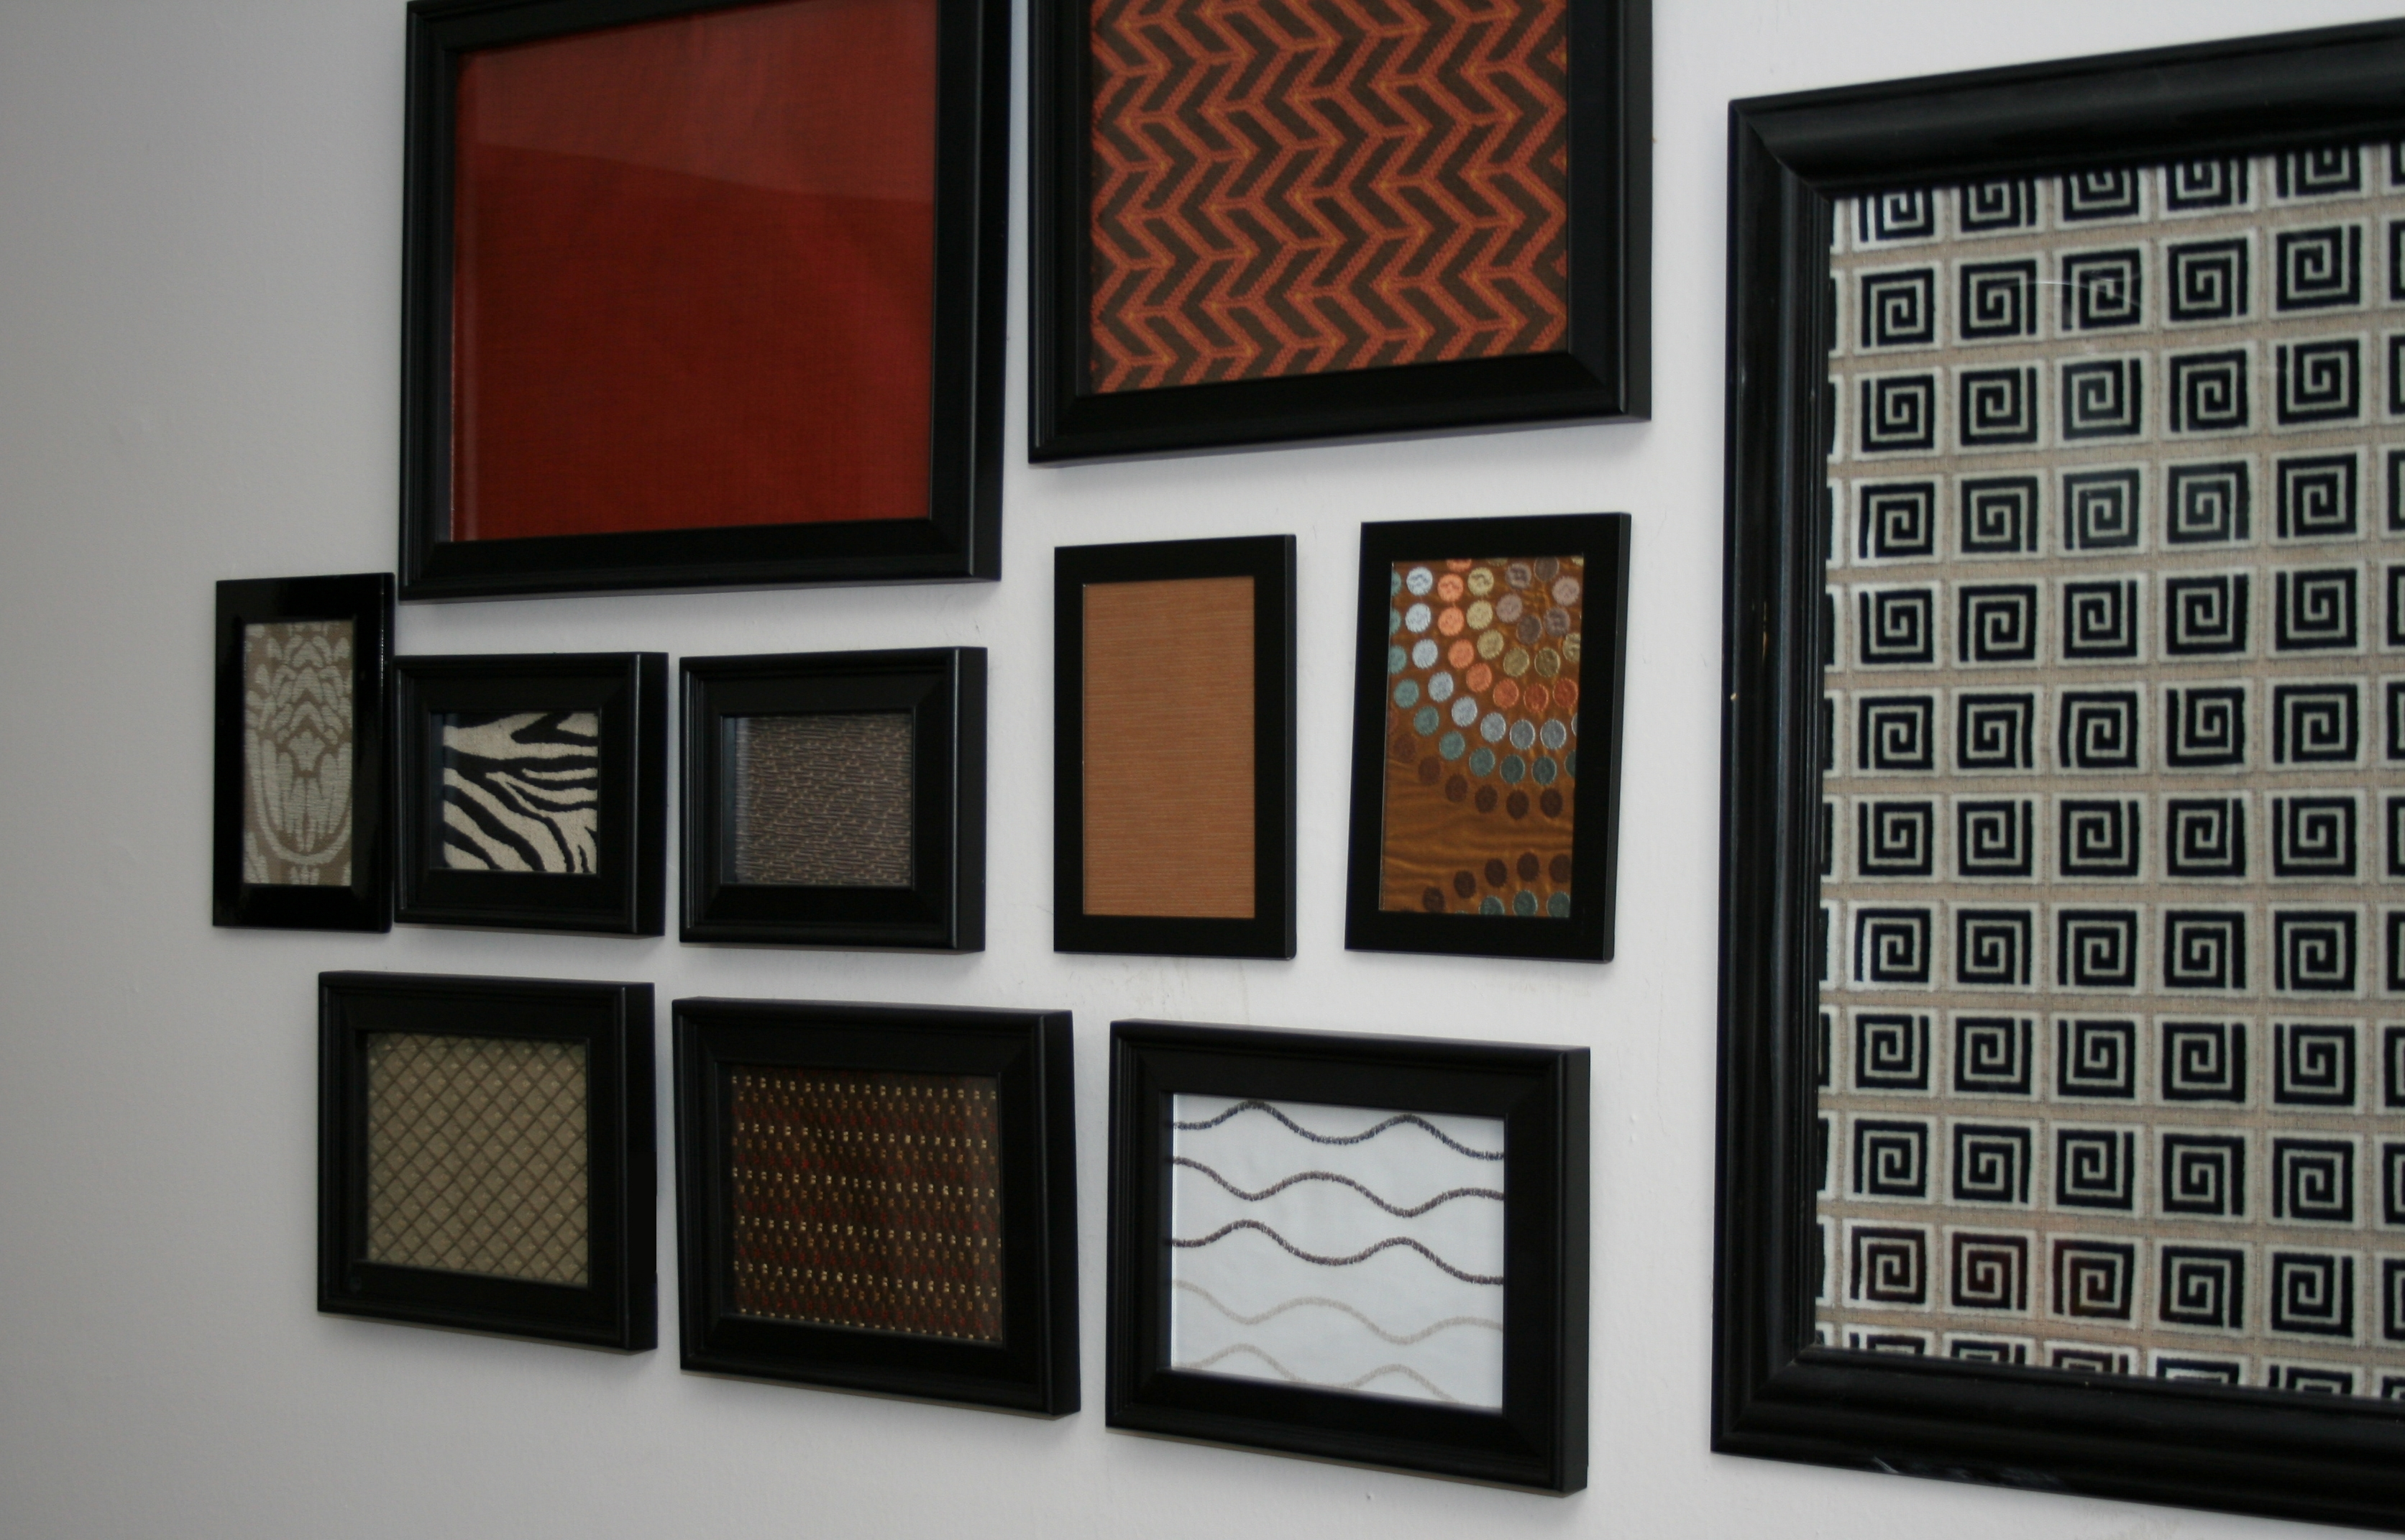 Framed Fabric Wall Art | With Regard To Most Current Framed Textile Wall Art (View 15 of 15)